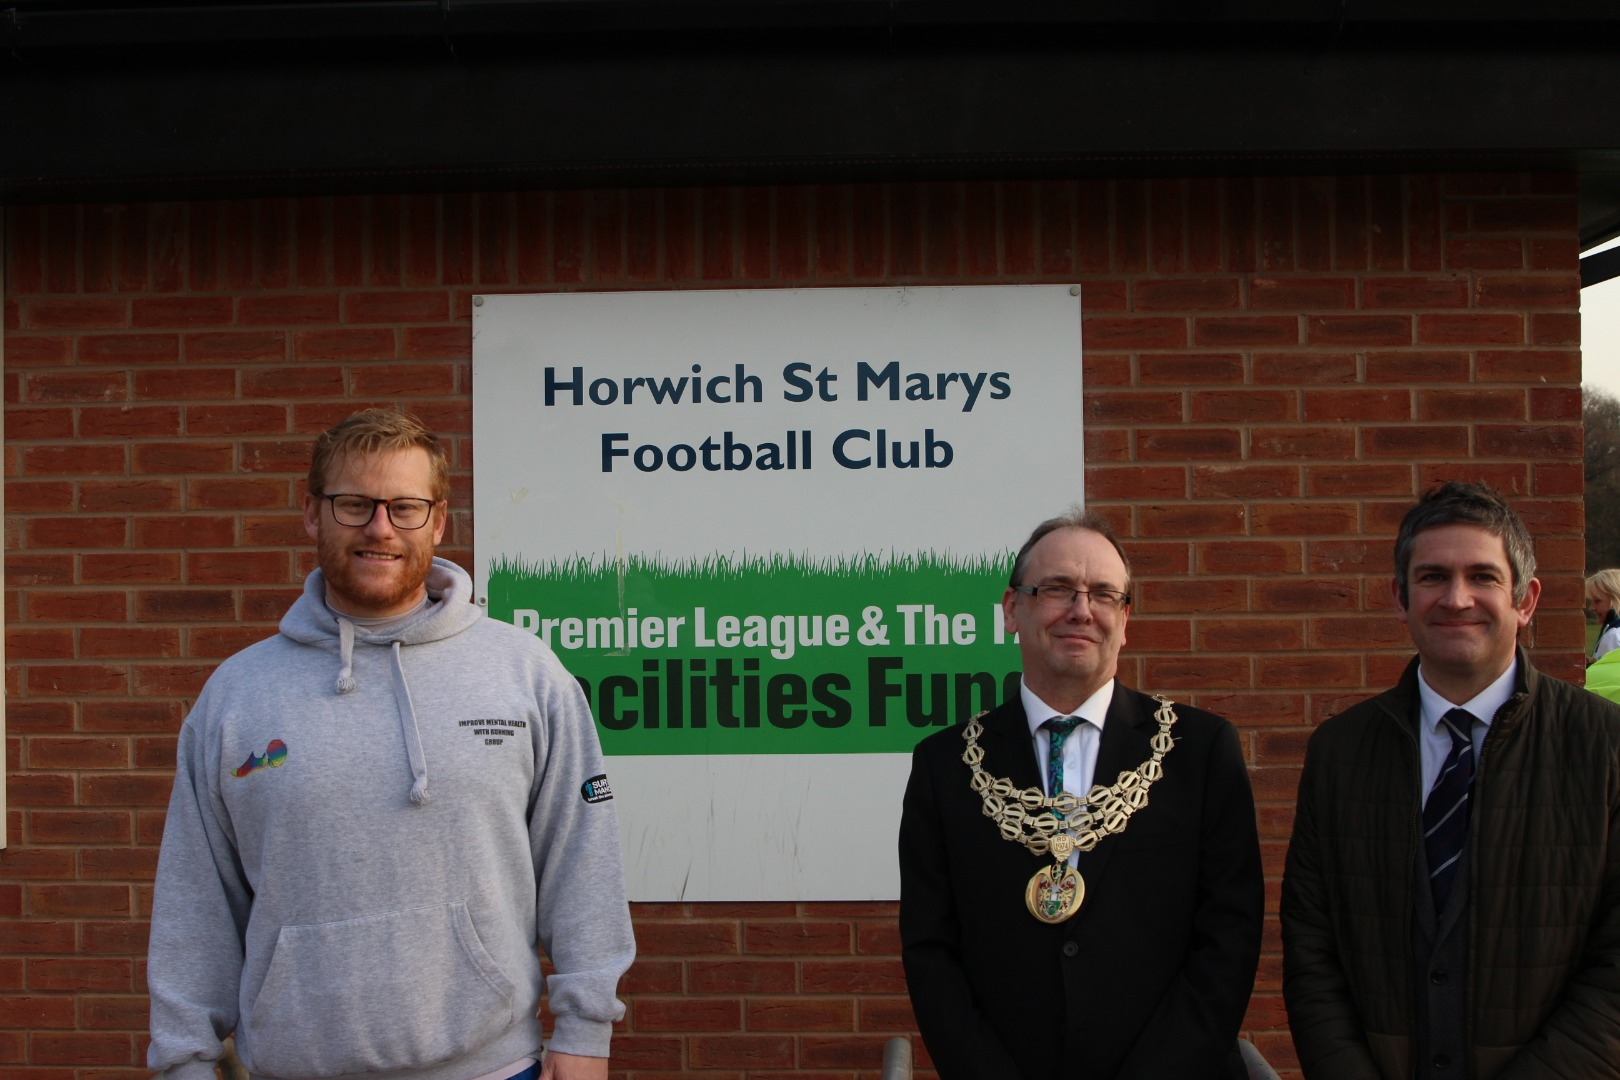 Sam's Warr;ors move to St Mary's JFC playing fields sports hut